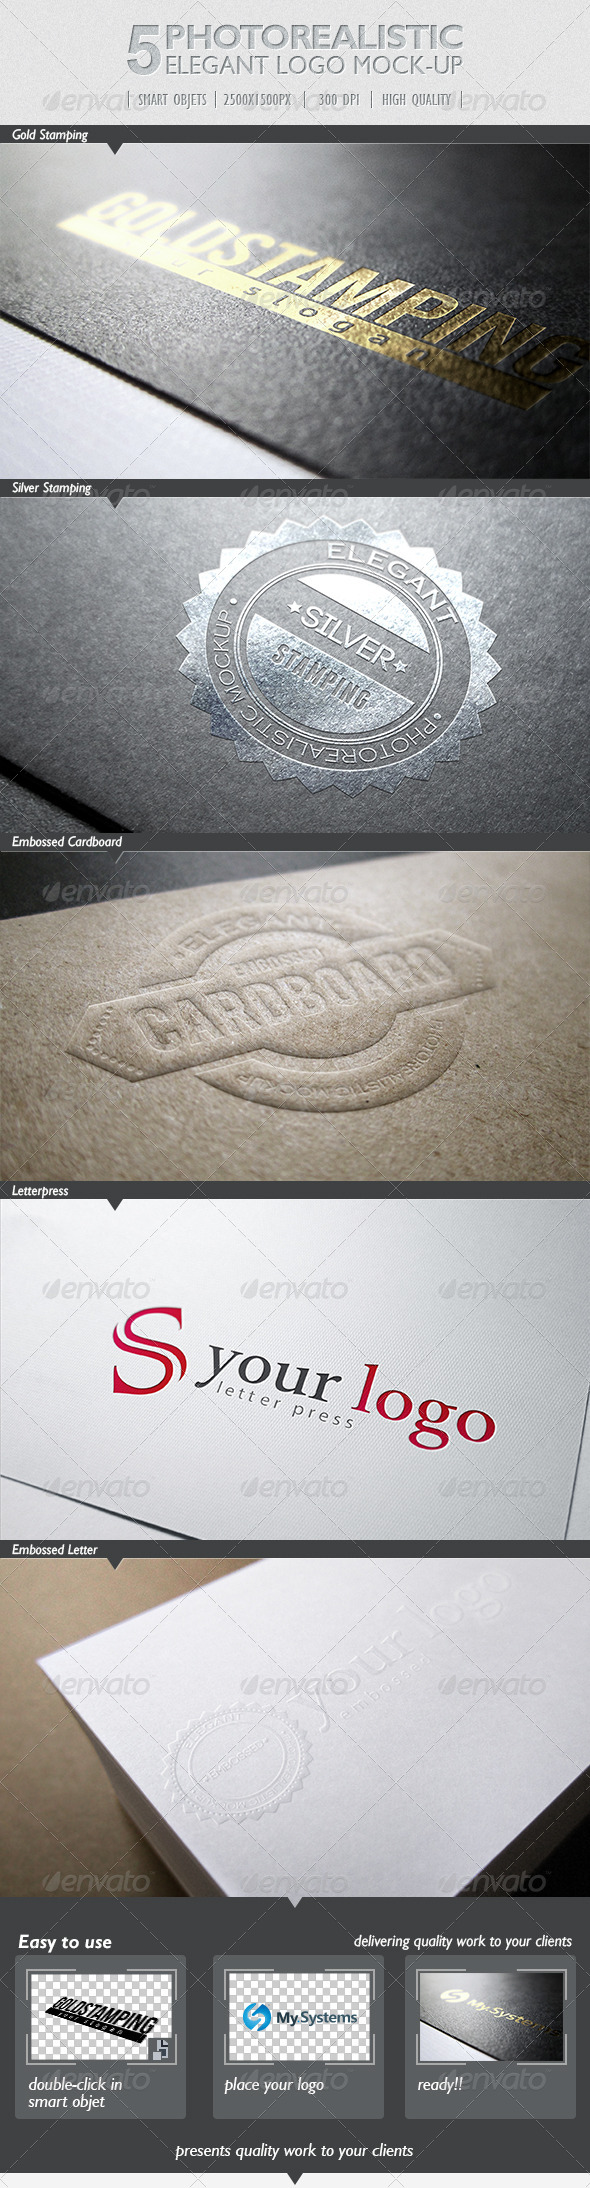 5 Photorealistic Logo Mock-Up | Pack 1 - Print Product Mock-Ups